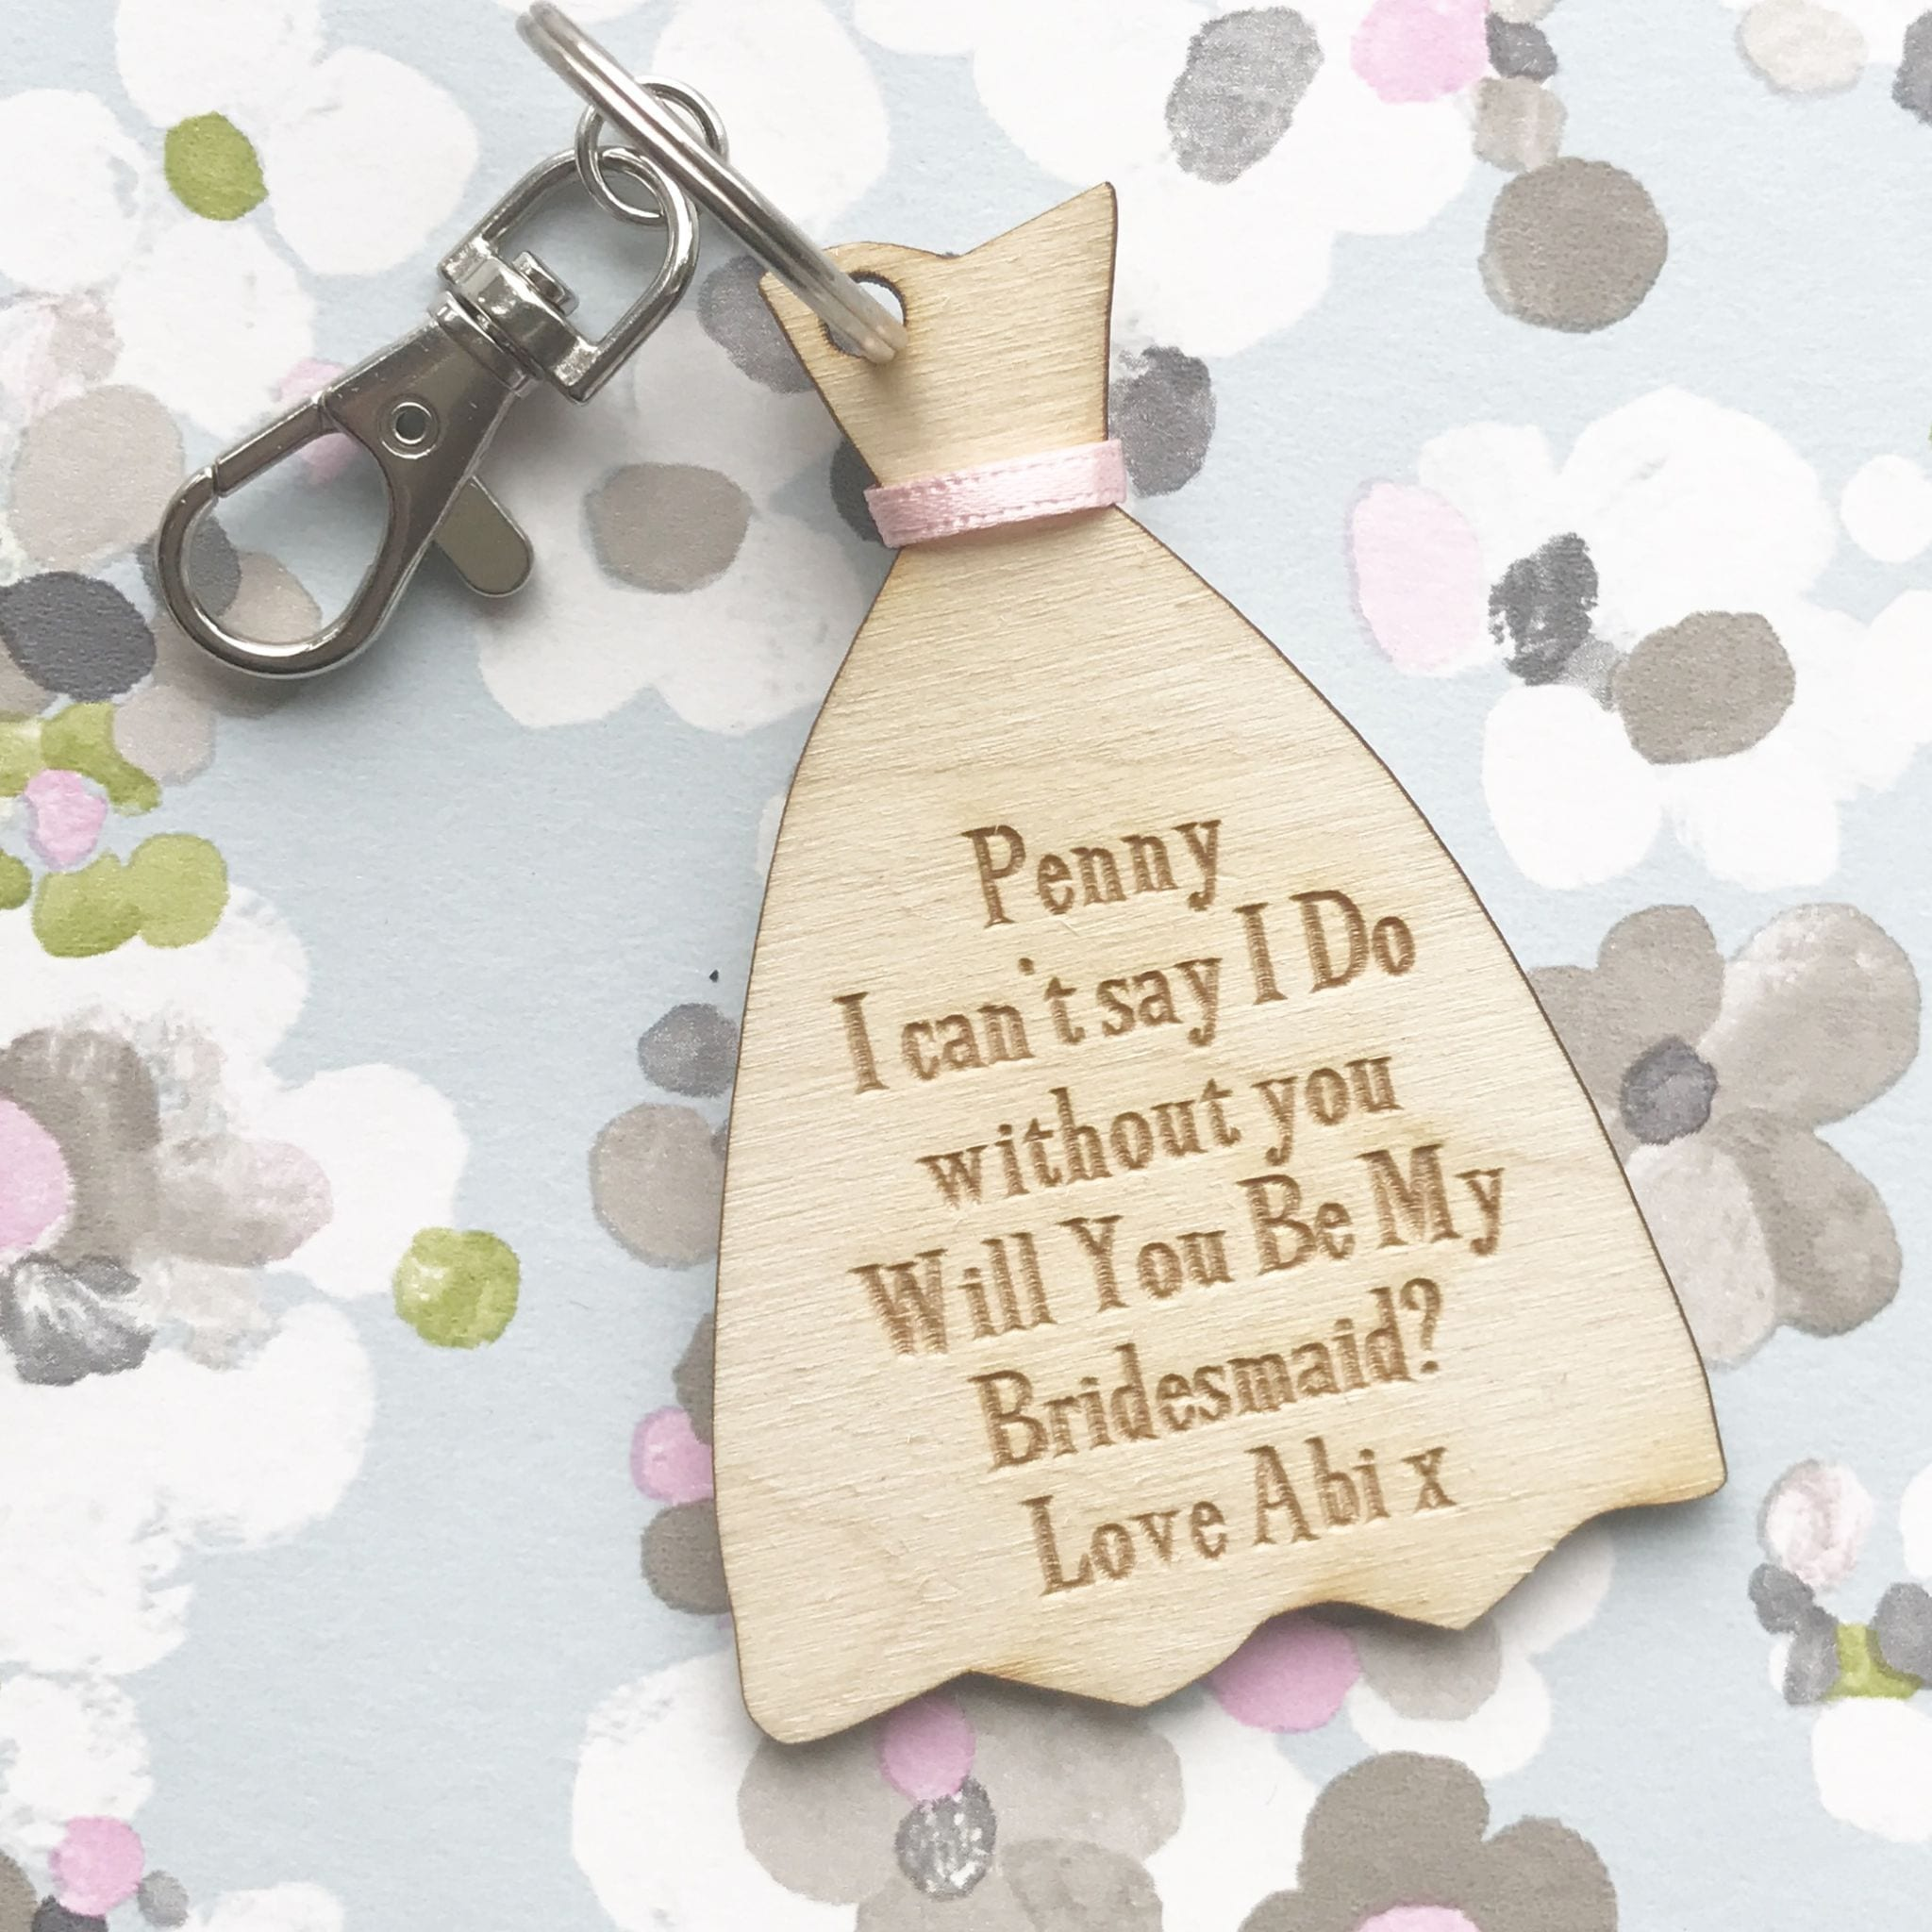 Dress keyring or magnet can't say I do without you